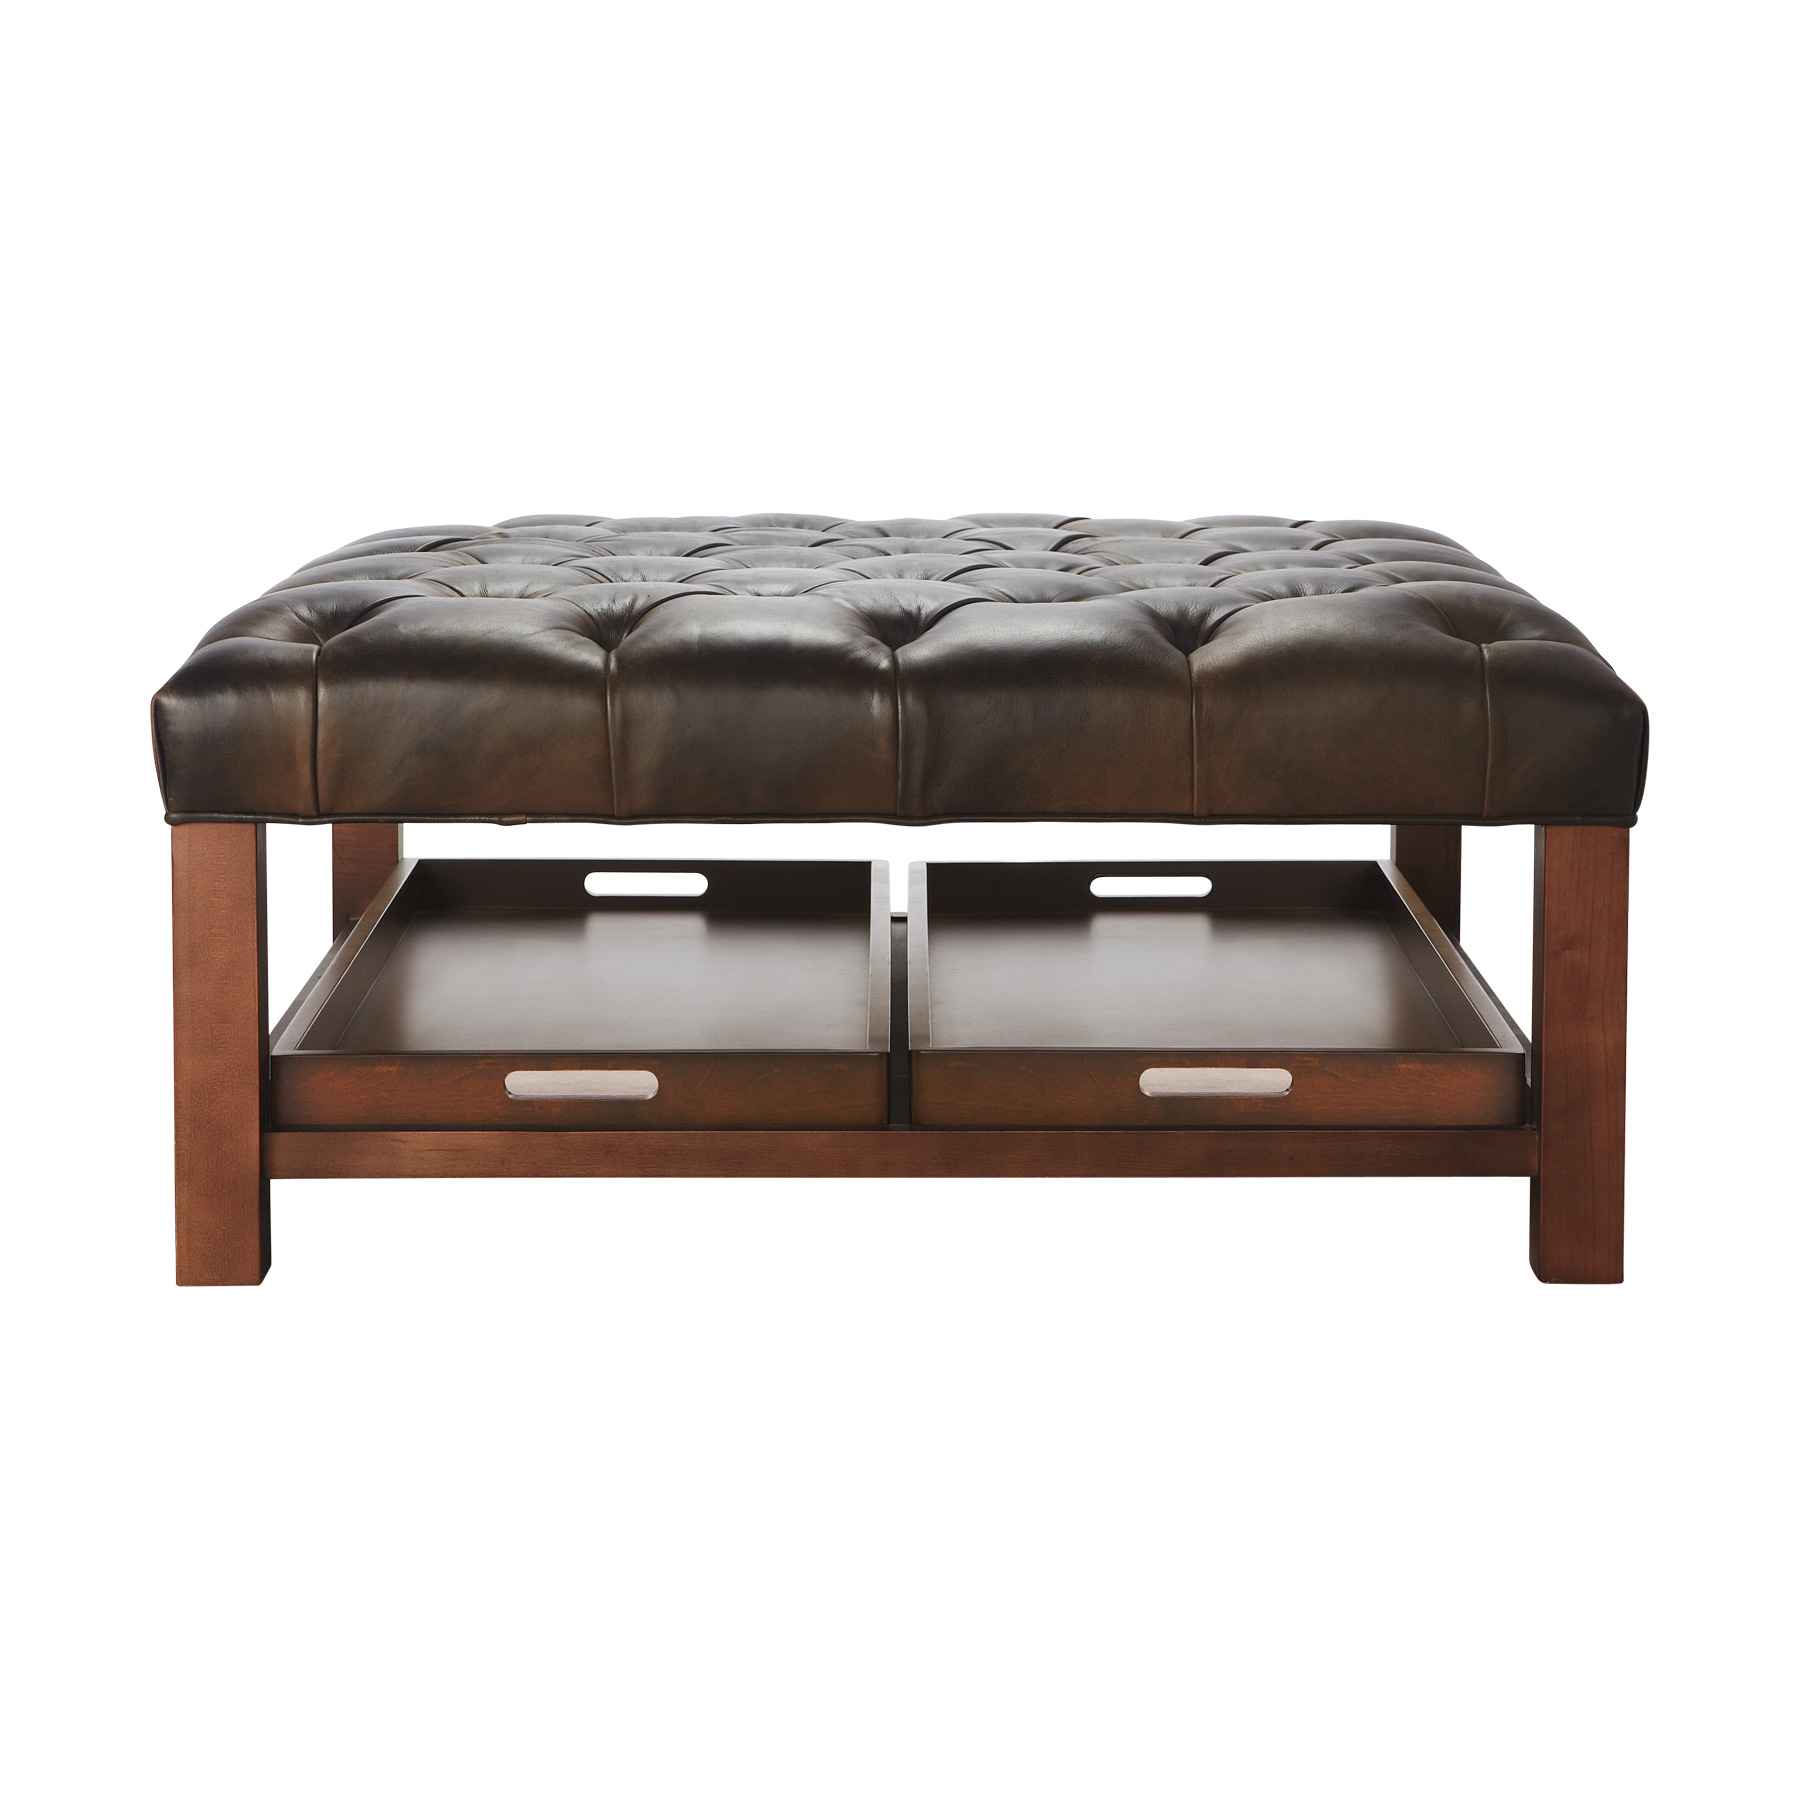 Modern Wood Coffee Table Reclaimed Metal Mid Century Round Natural Diy Padded Large Rectangular Leather Ottoman Coffee Table Easy (Image 9 of 10)